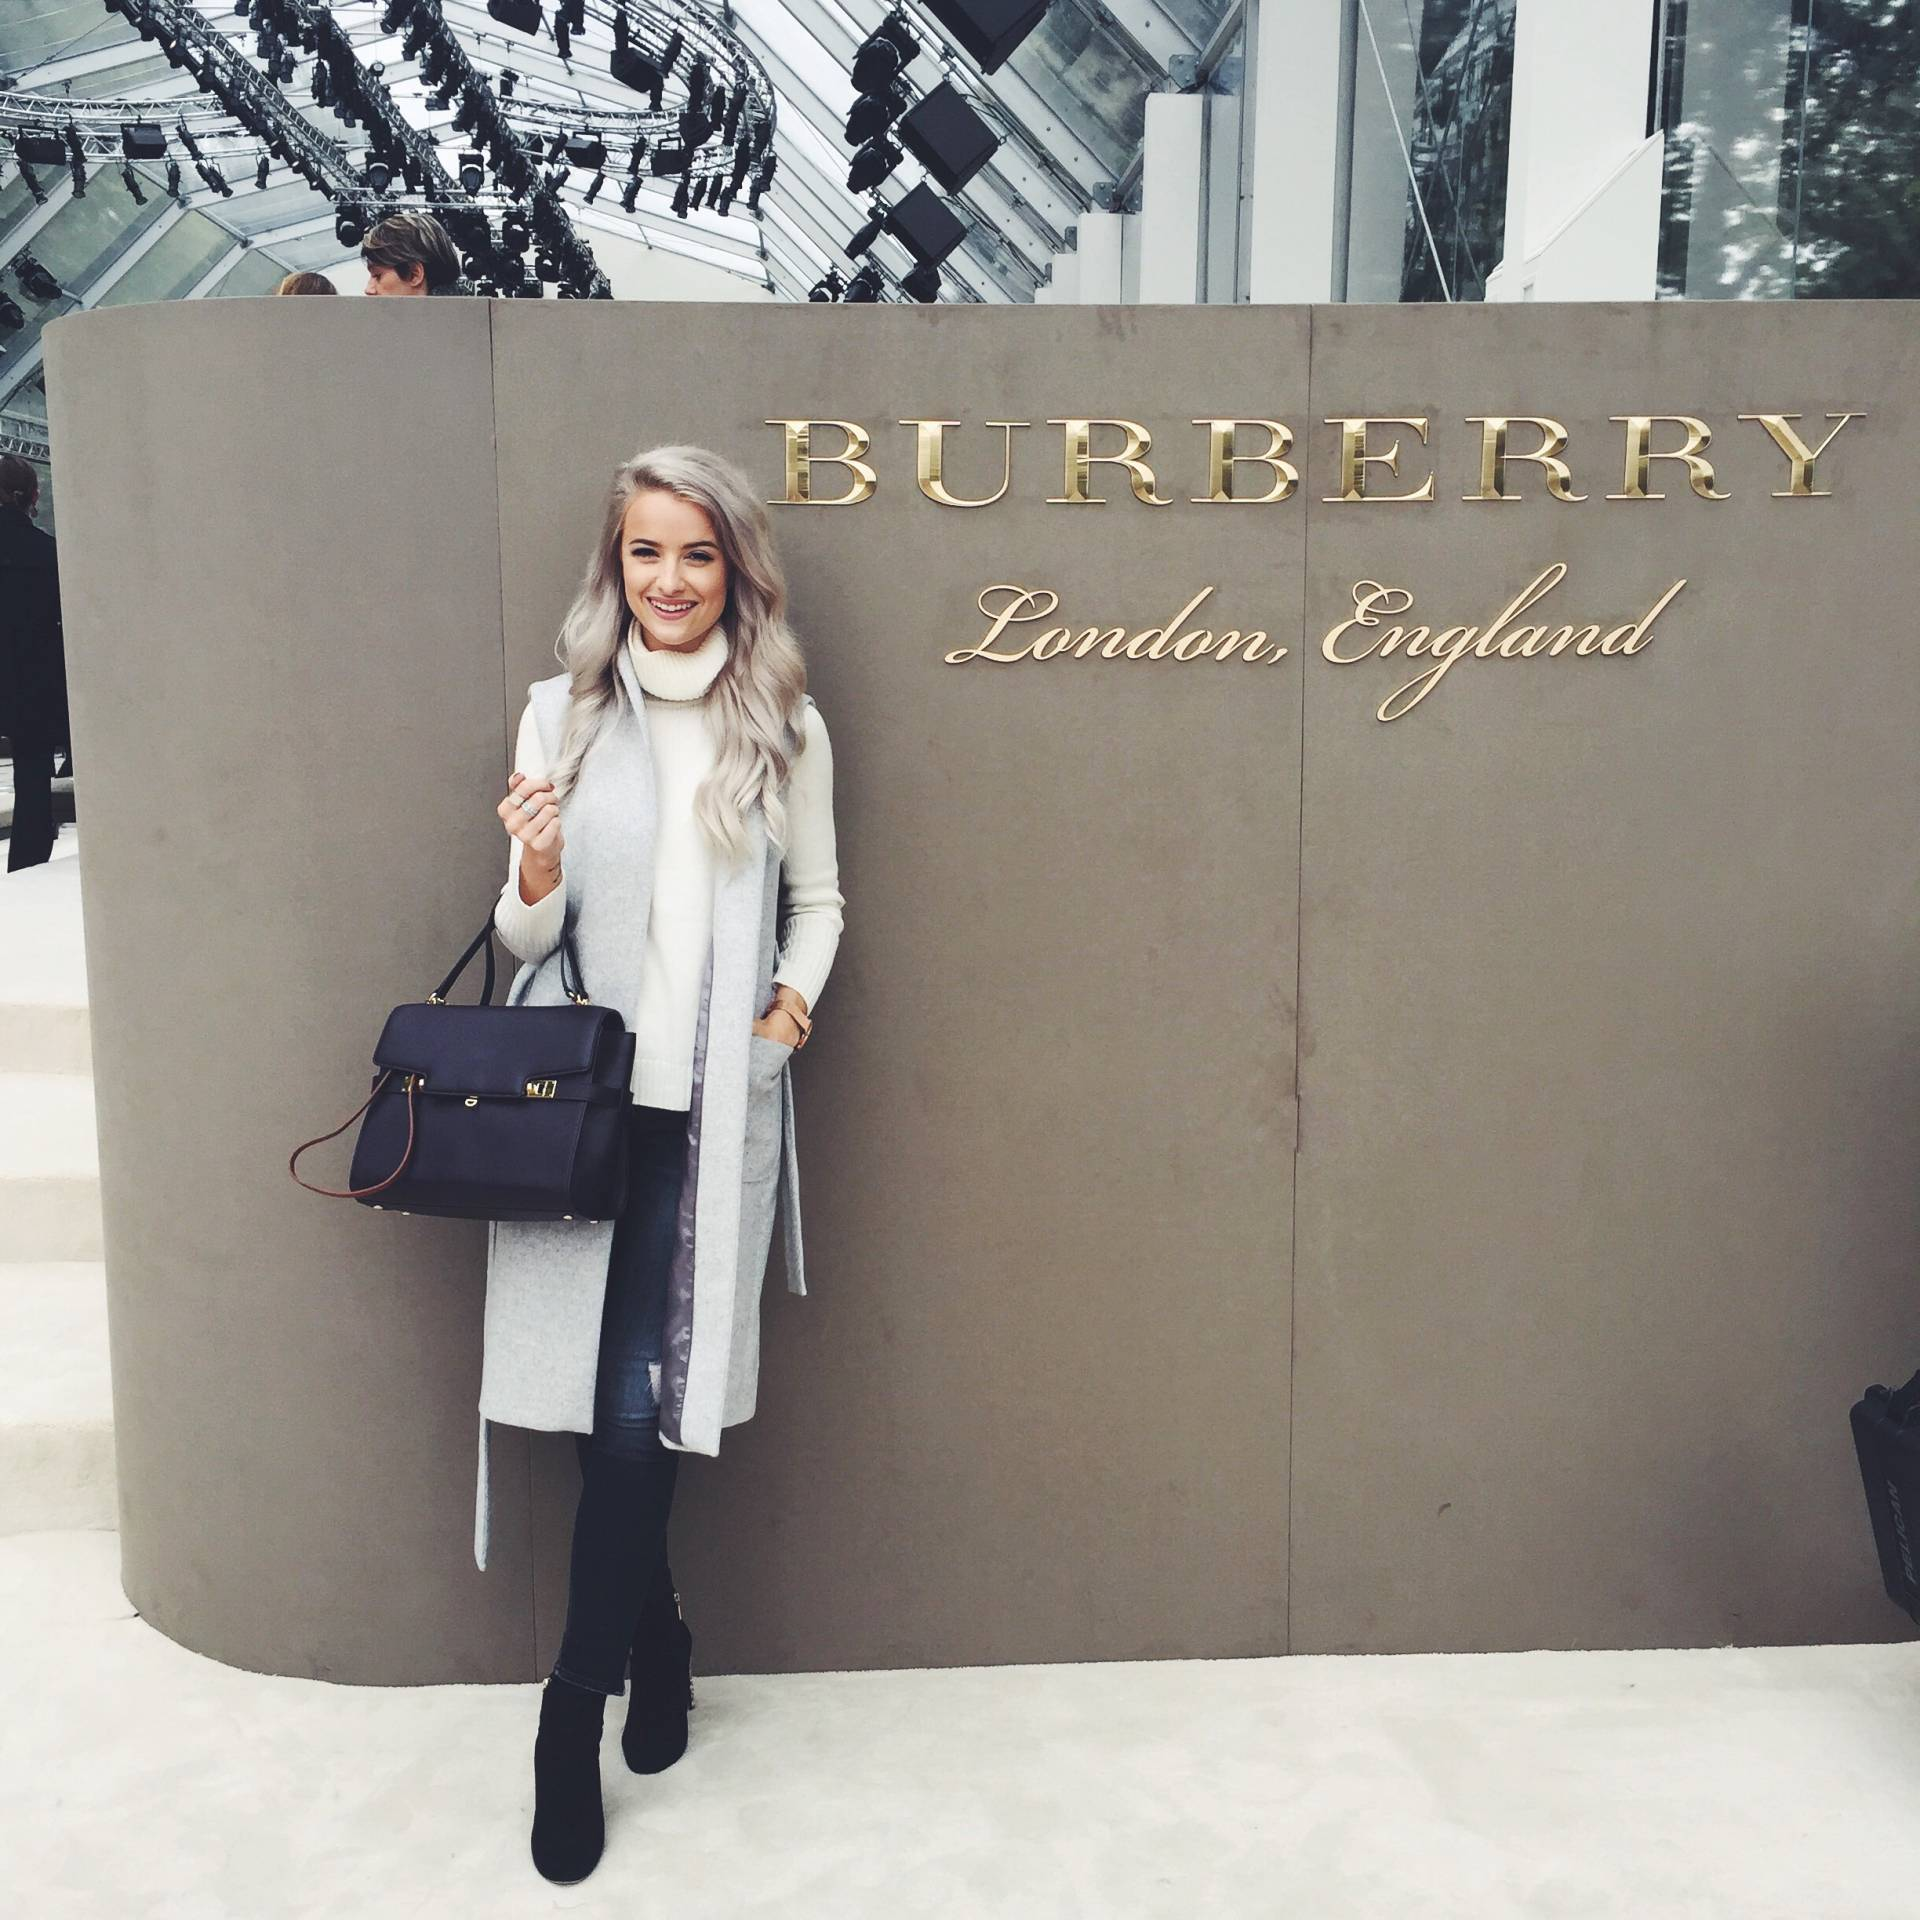 Burberry Spring/Summer 2016 London Fashion Week inthefrow.com